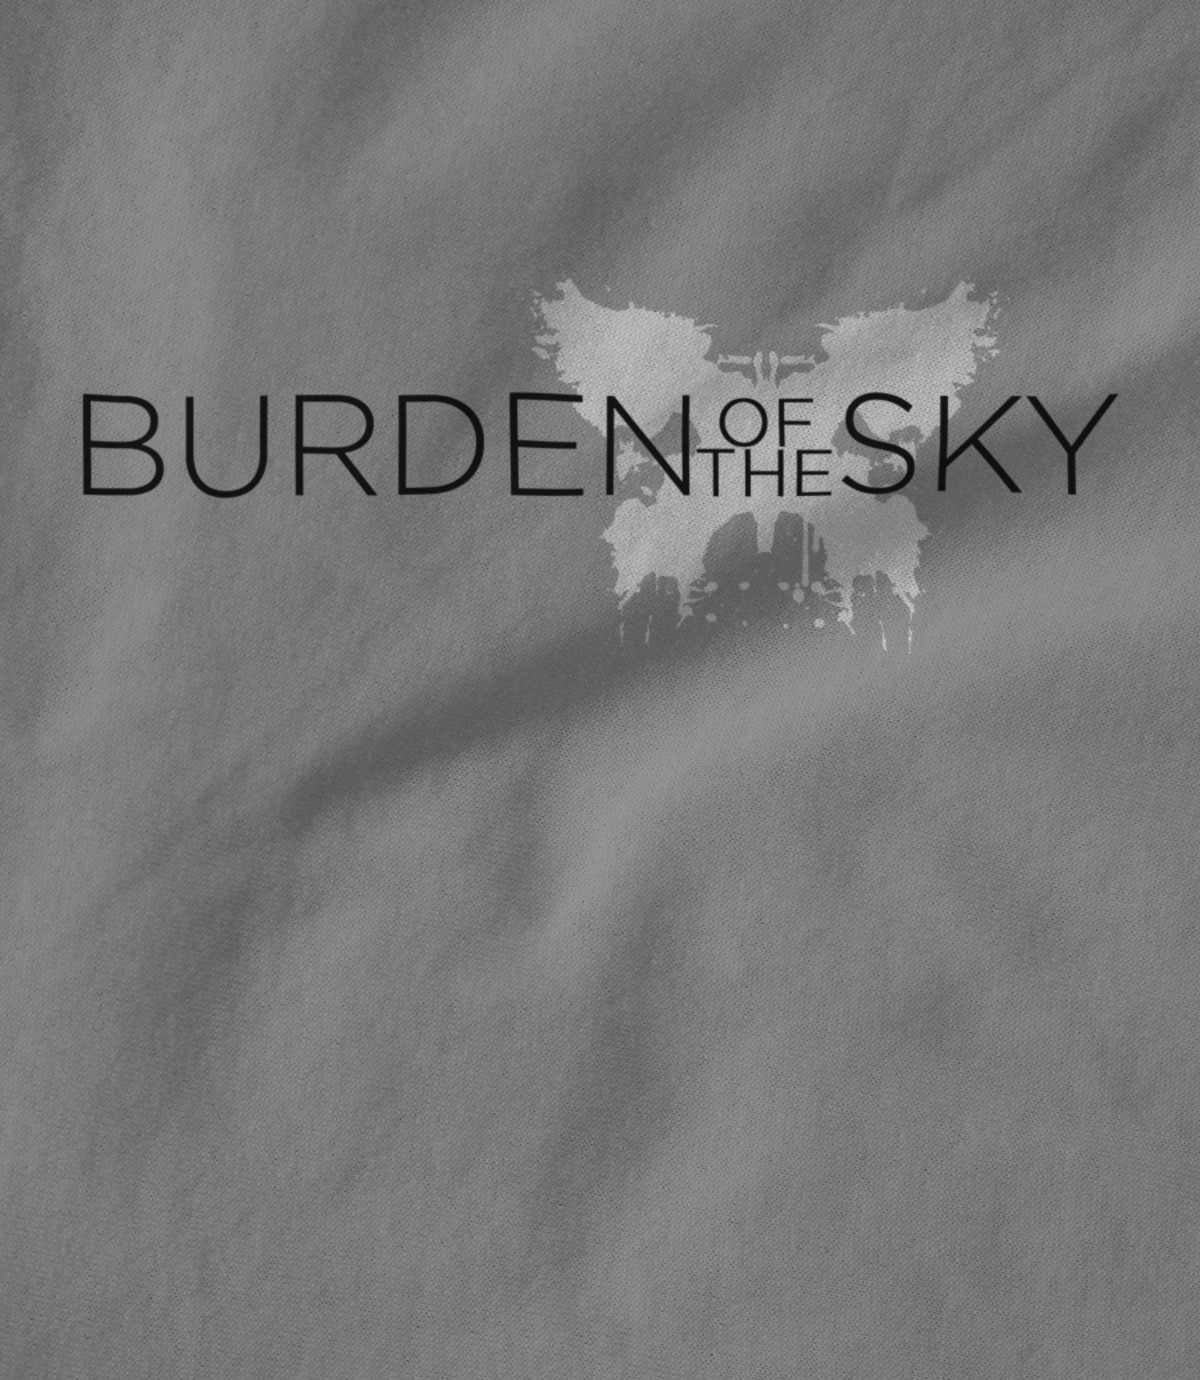 Burden of the sky core 1525727731